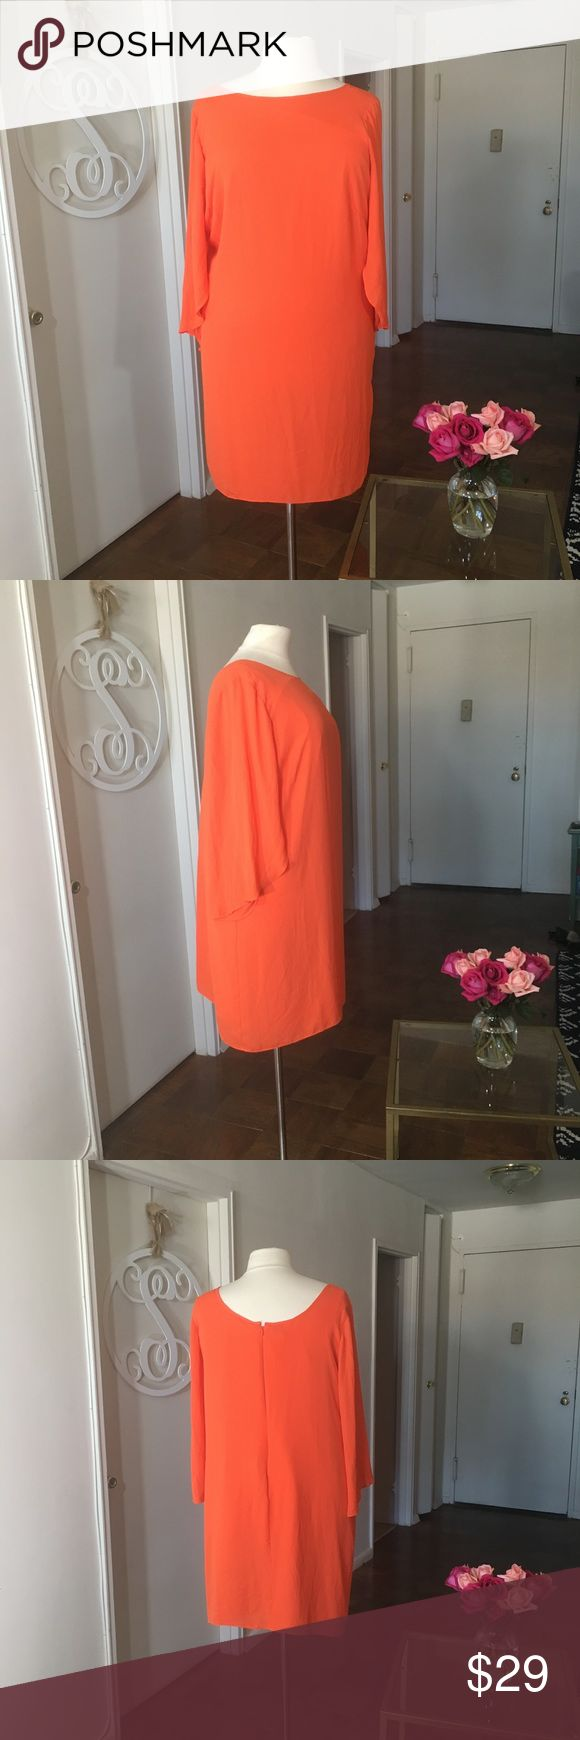 London Times Plus Size Orange Dress Stunning dress. No stretch. Please feel free to ask any questions. Measurements can be provided upon request. London Times Dresses